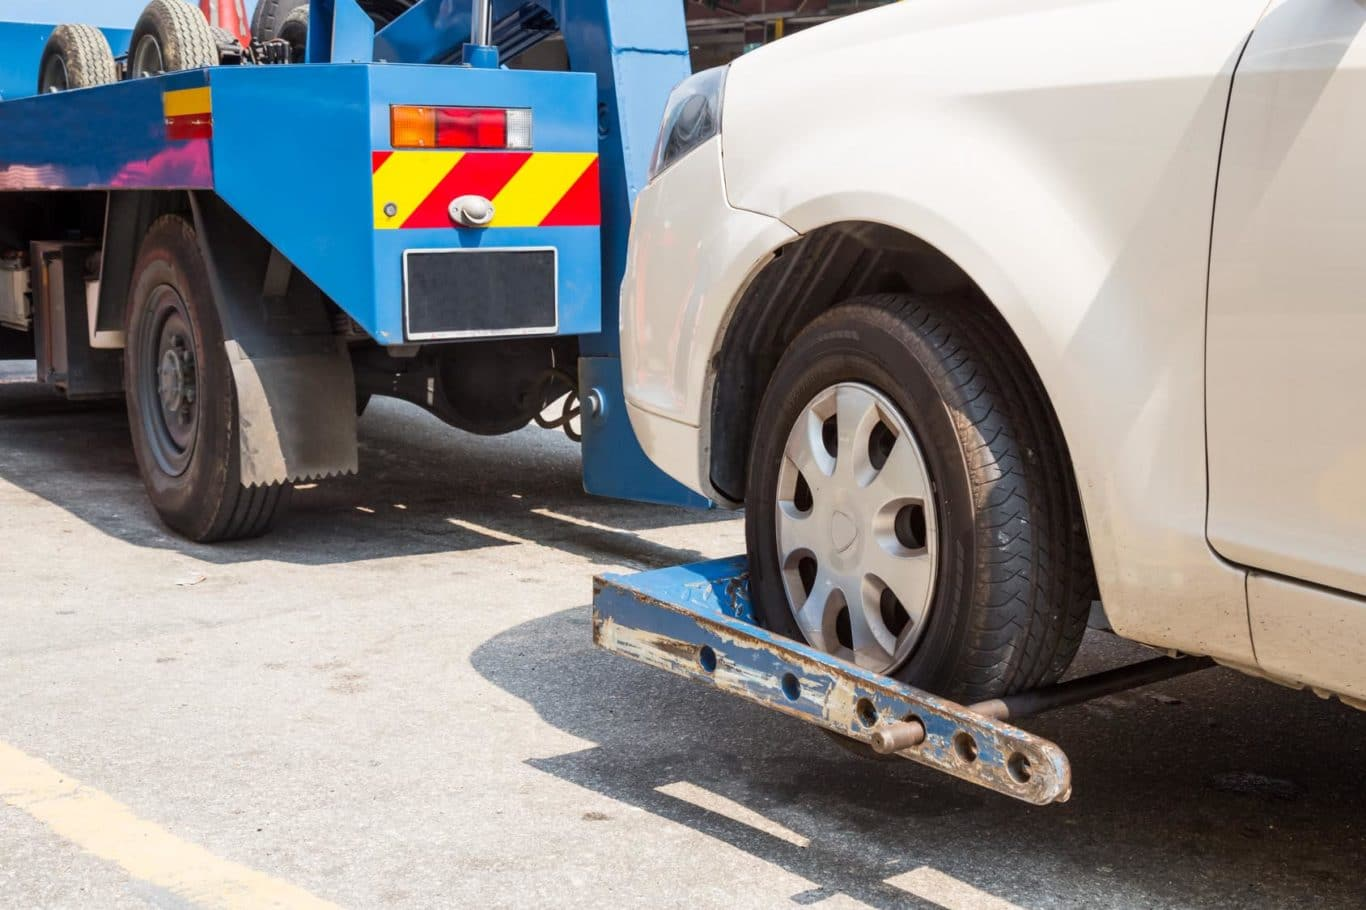 Carbury expert Tow Truck services